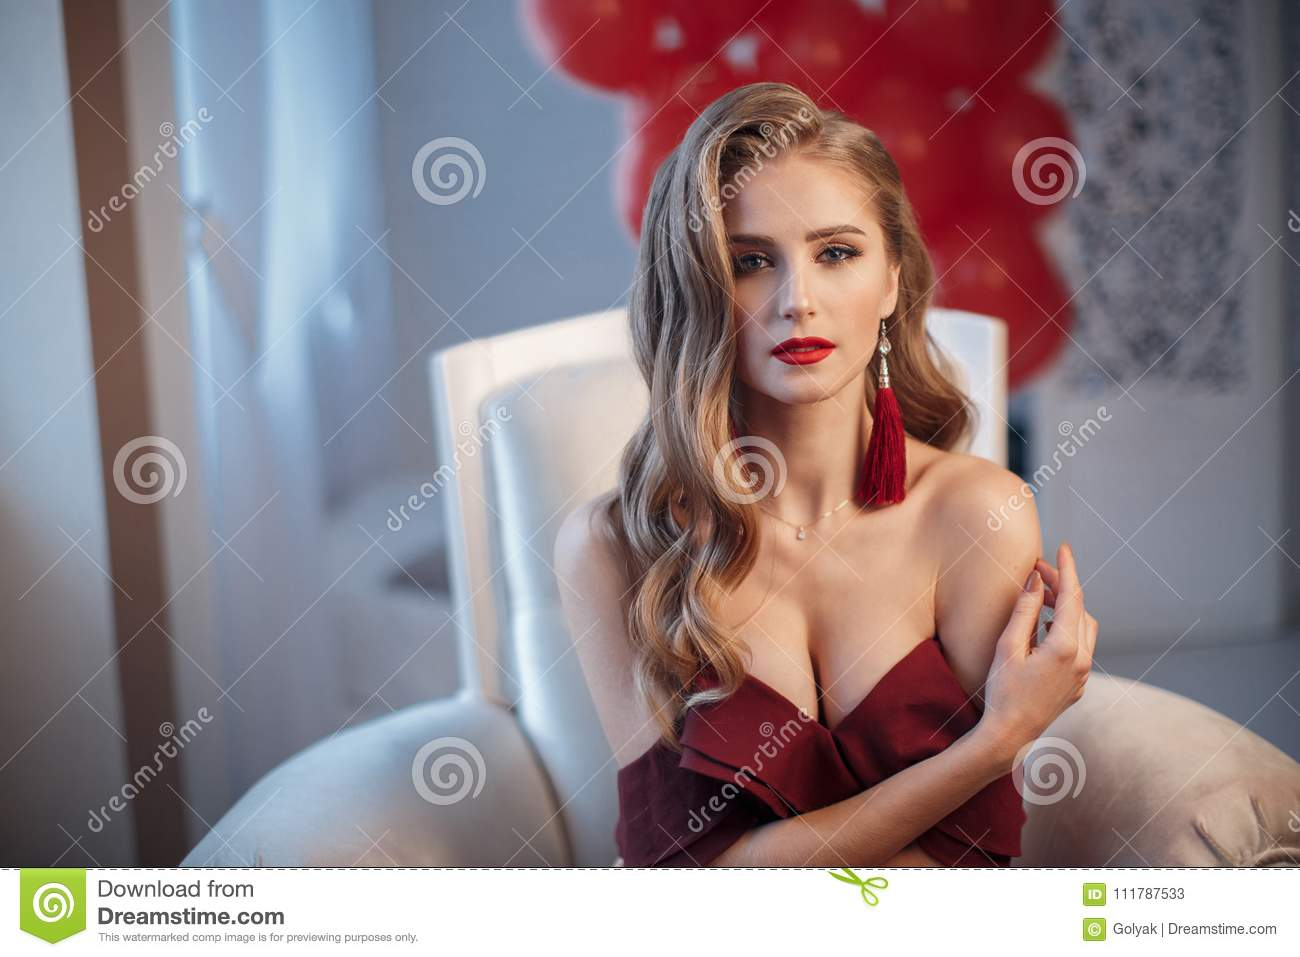 Beautiful woman in an elegant outdoor dress posing alone, sitting in a chair